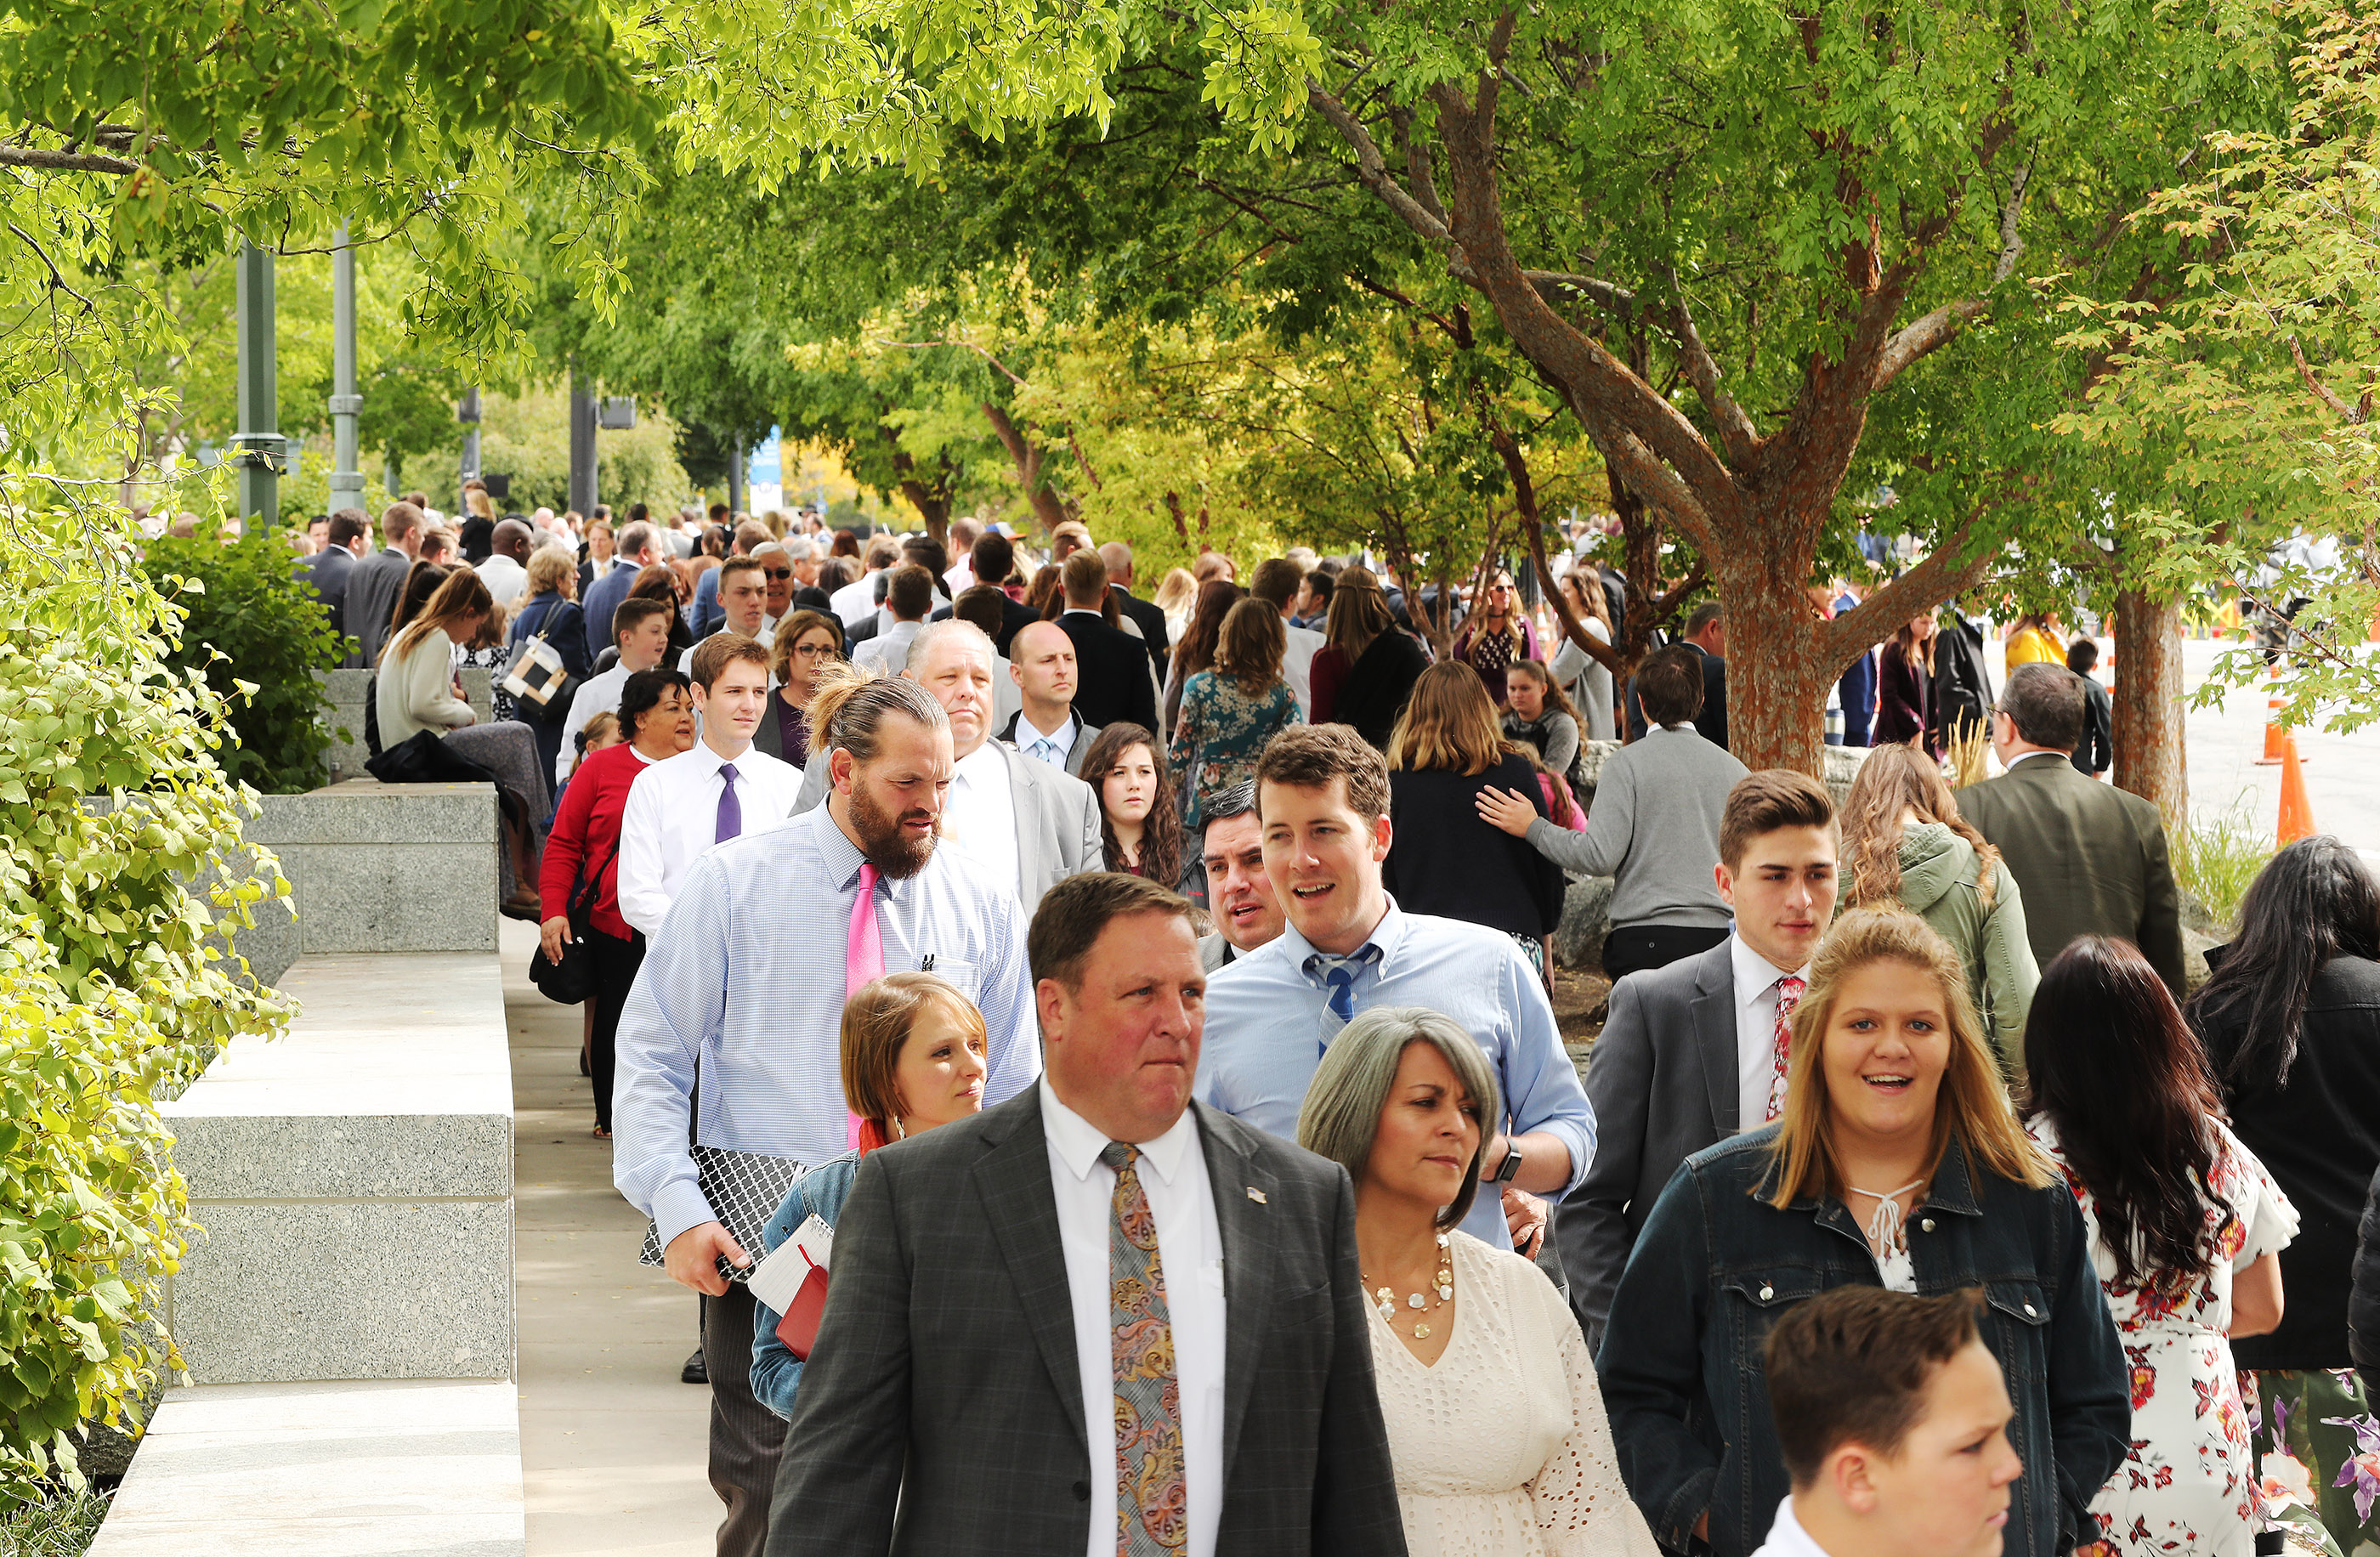 Attendees leave the morning session during the 188th Semiannual General Conference of The Church of Jesus Christ of Latter-day Saints in Salt Lake City on Saturday, Oct. 6, 2018.